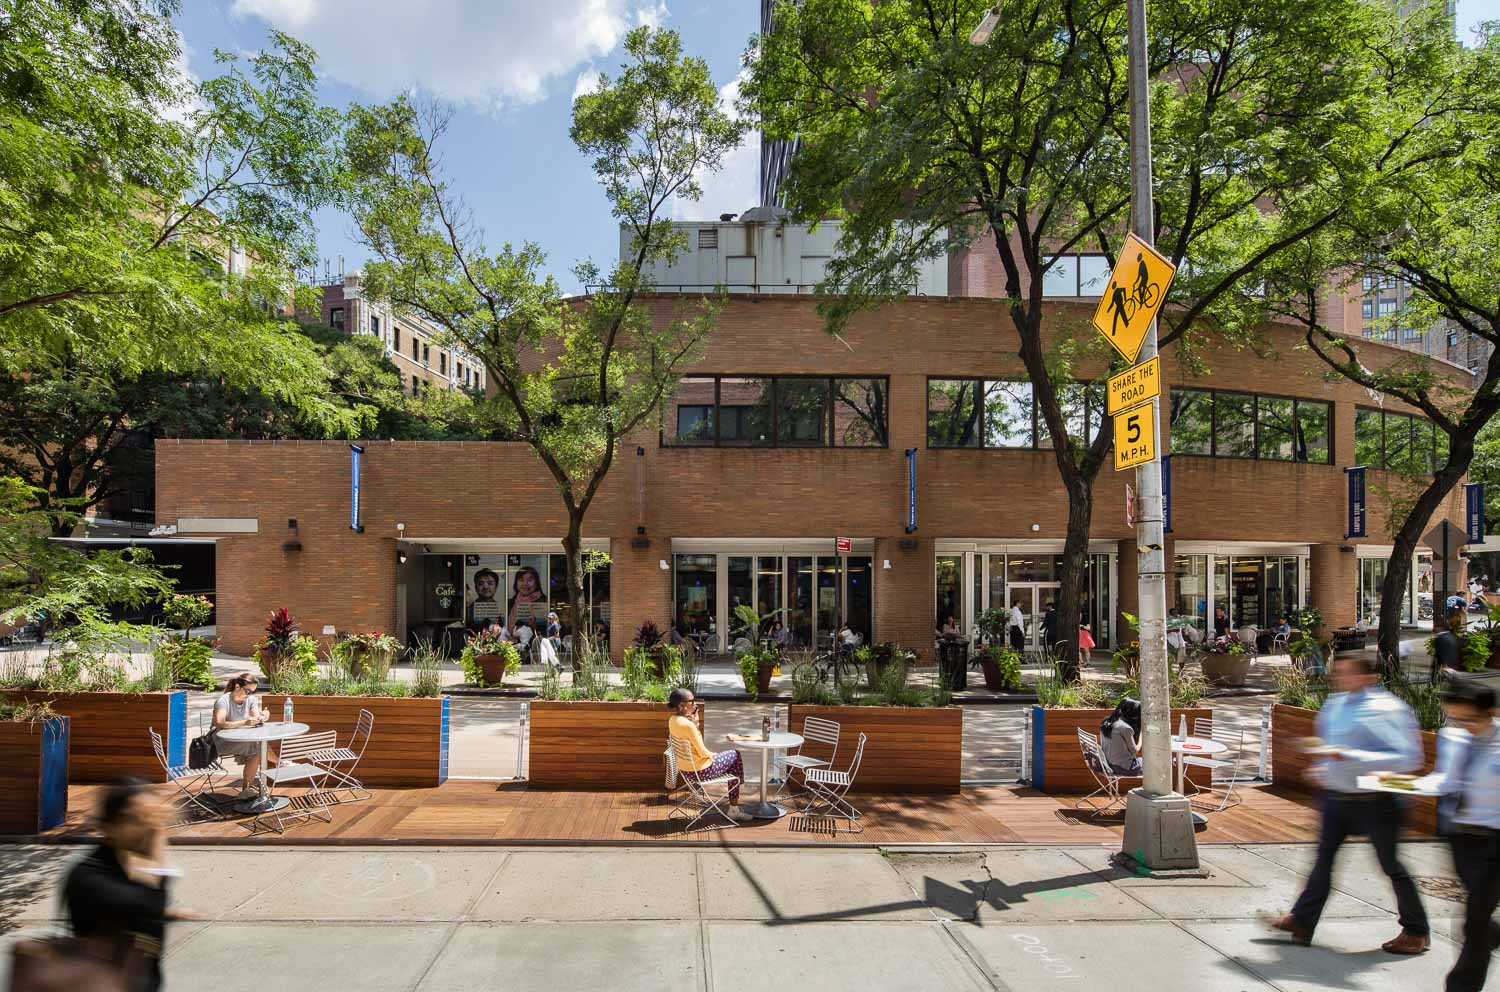 Street-level of seating area at Haven Plaza designed by FXCollaborative Architects